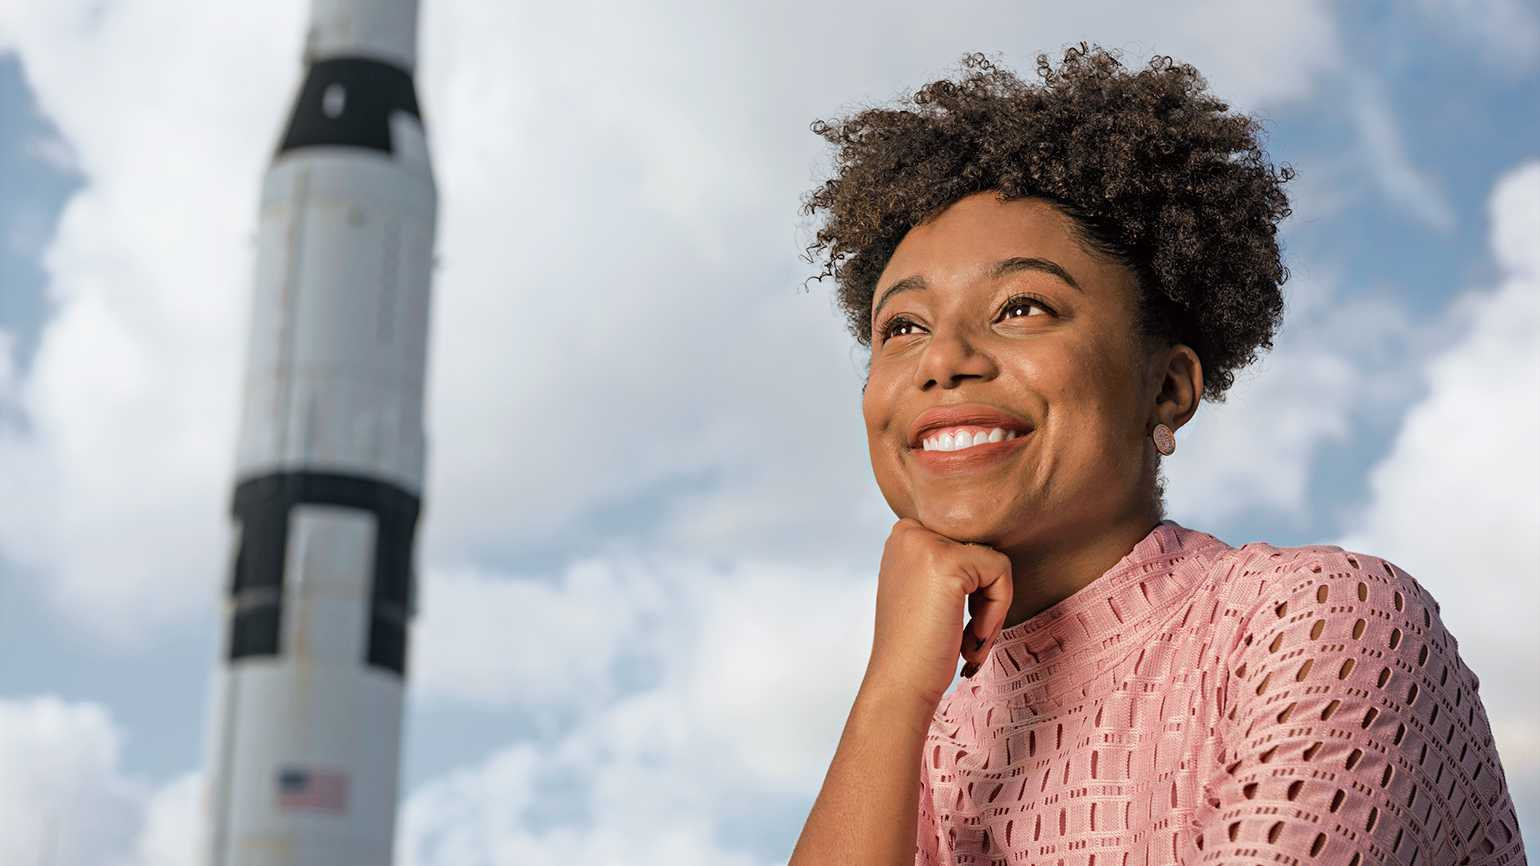 Tiera Guinn Fletcher at the U.S. Space and Rocket Center in Huntsville